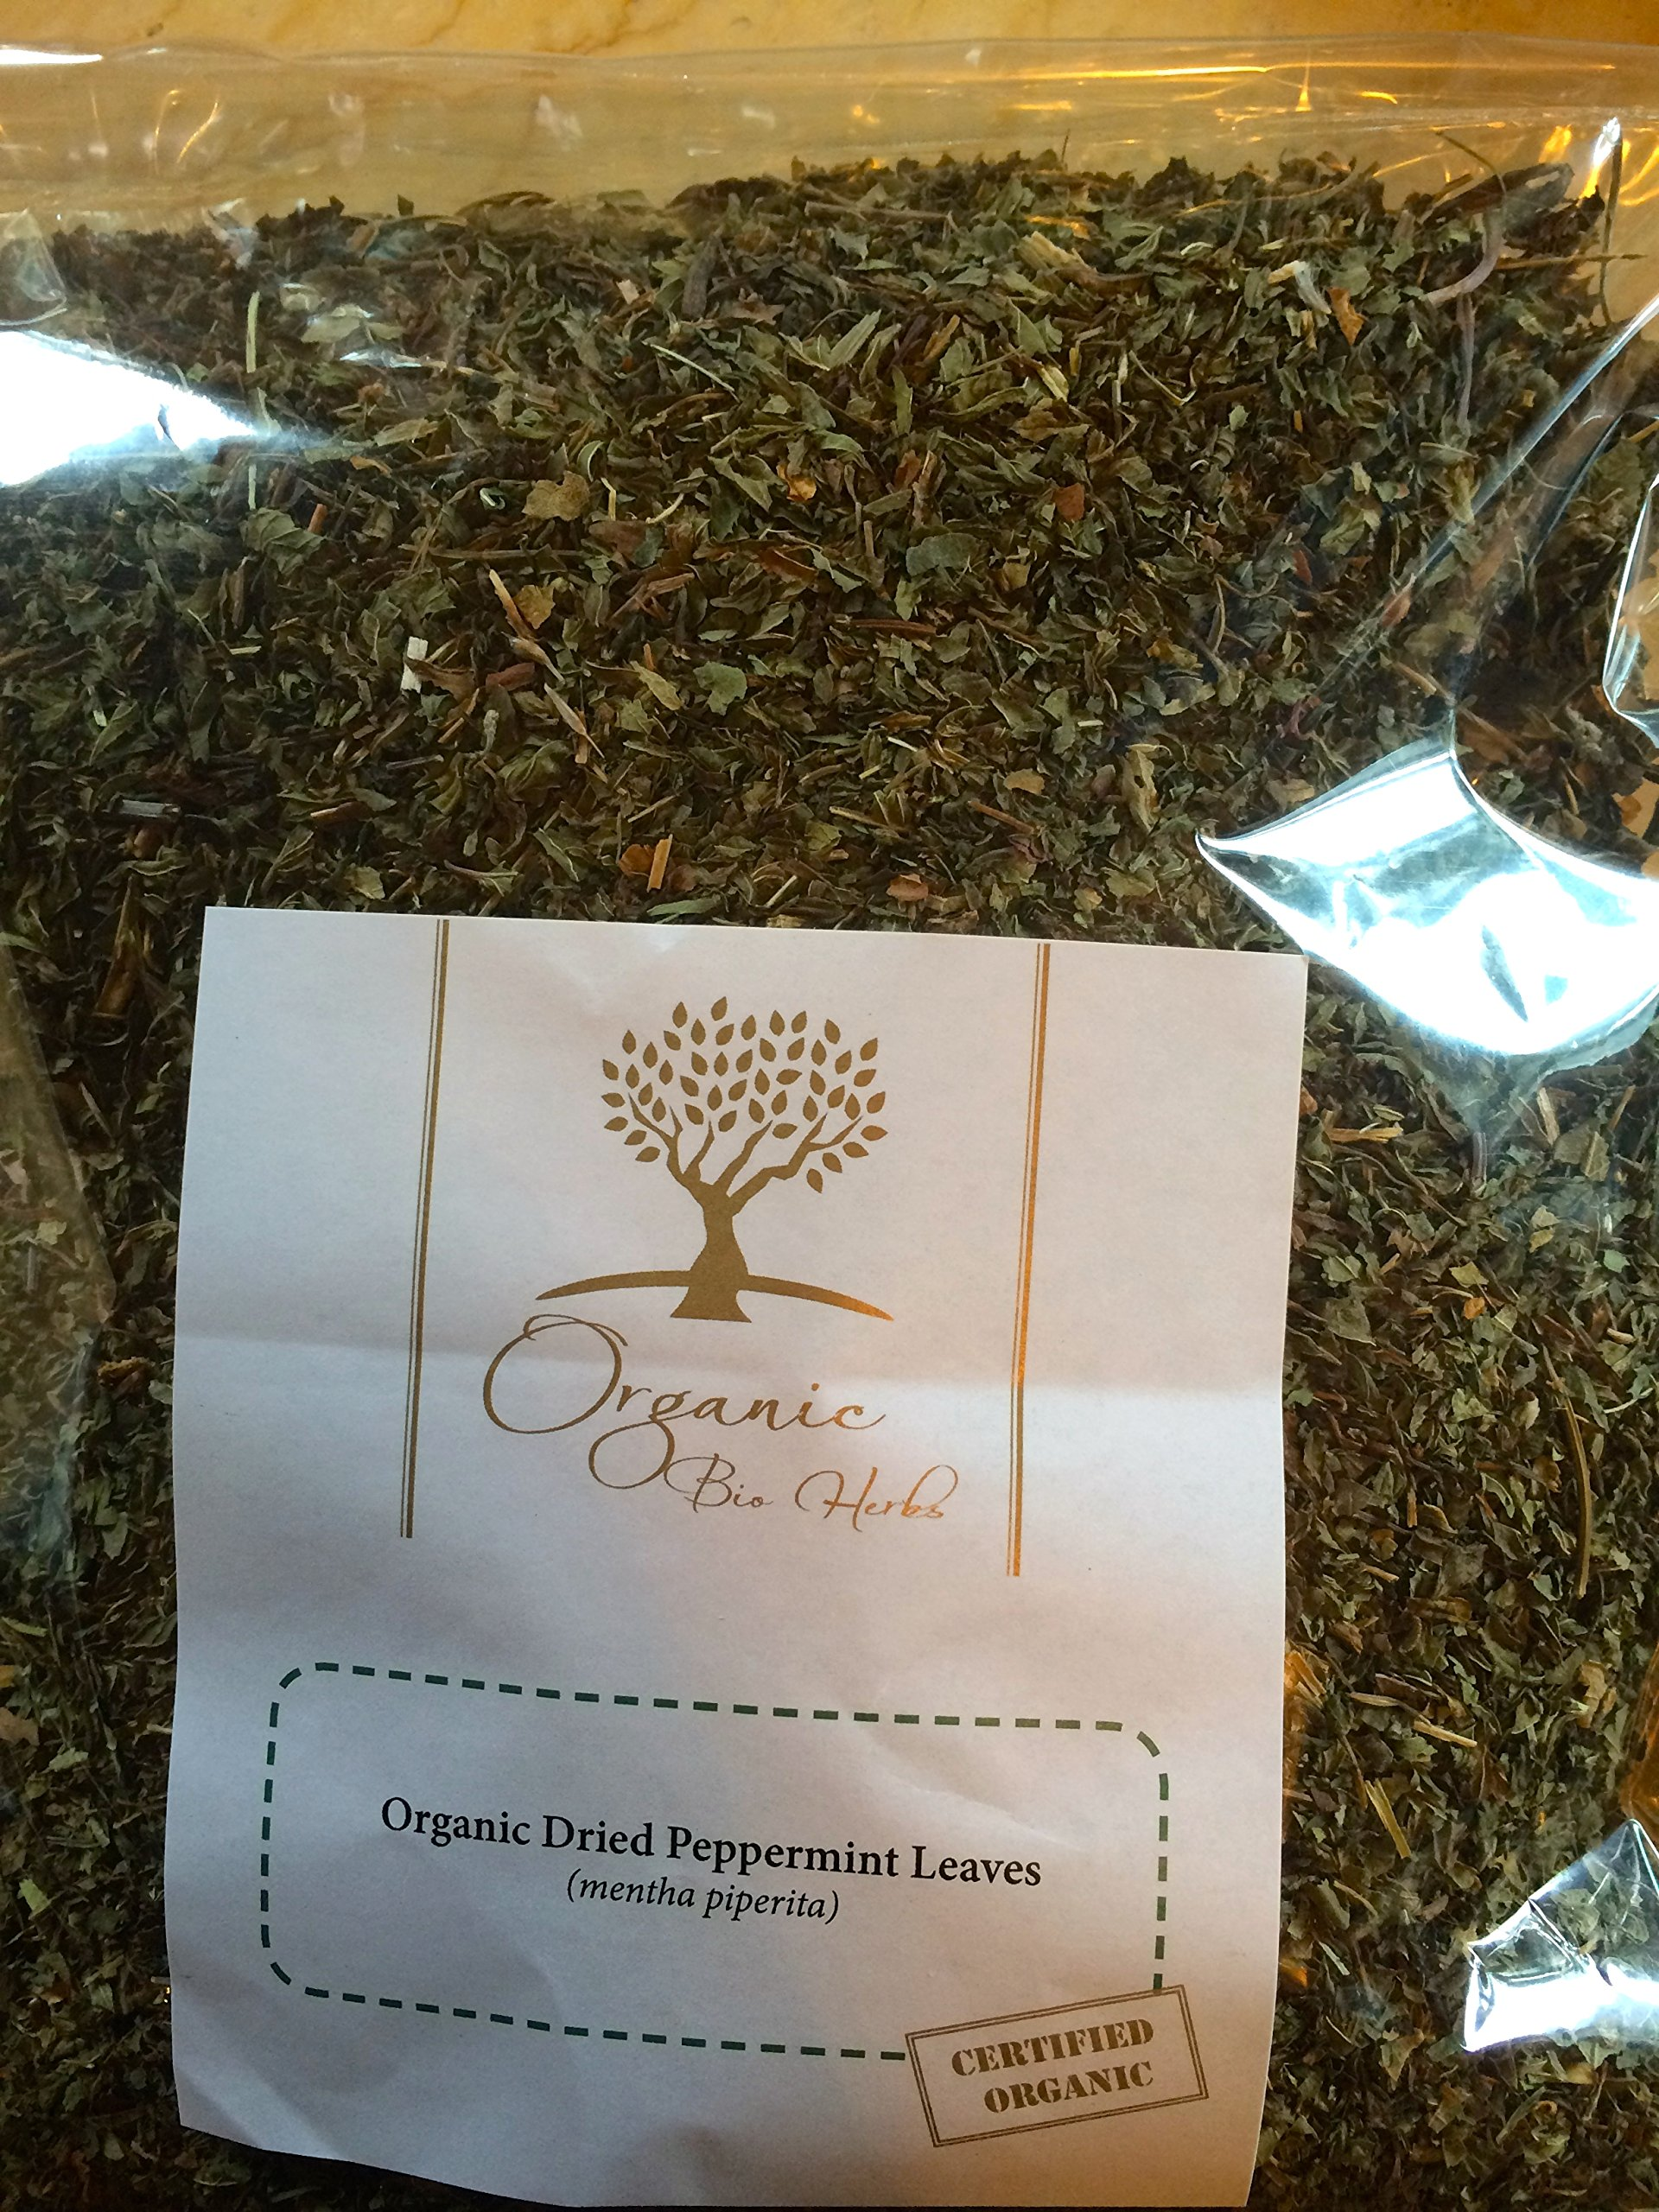 Organic Bio Herbs-Organic Dried Peppermint Leaves Cut (Mentha Piperita) 6 Oz. by Organic Bio Herbs (Image #1)